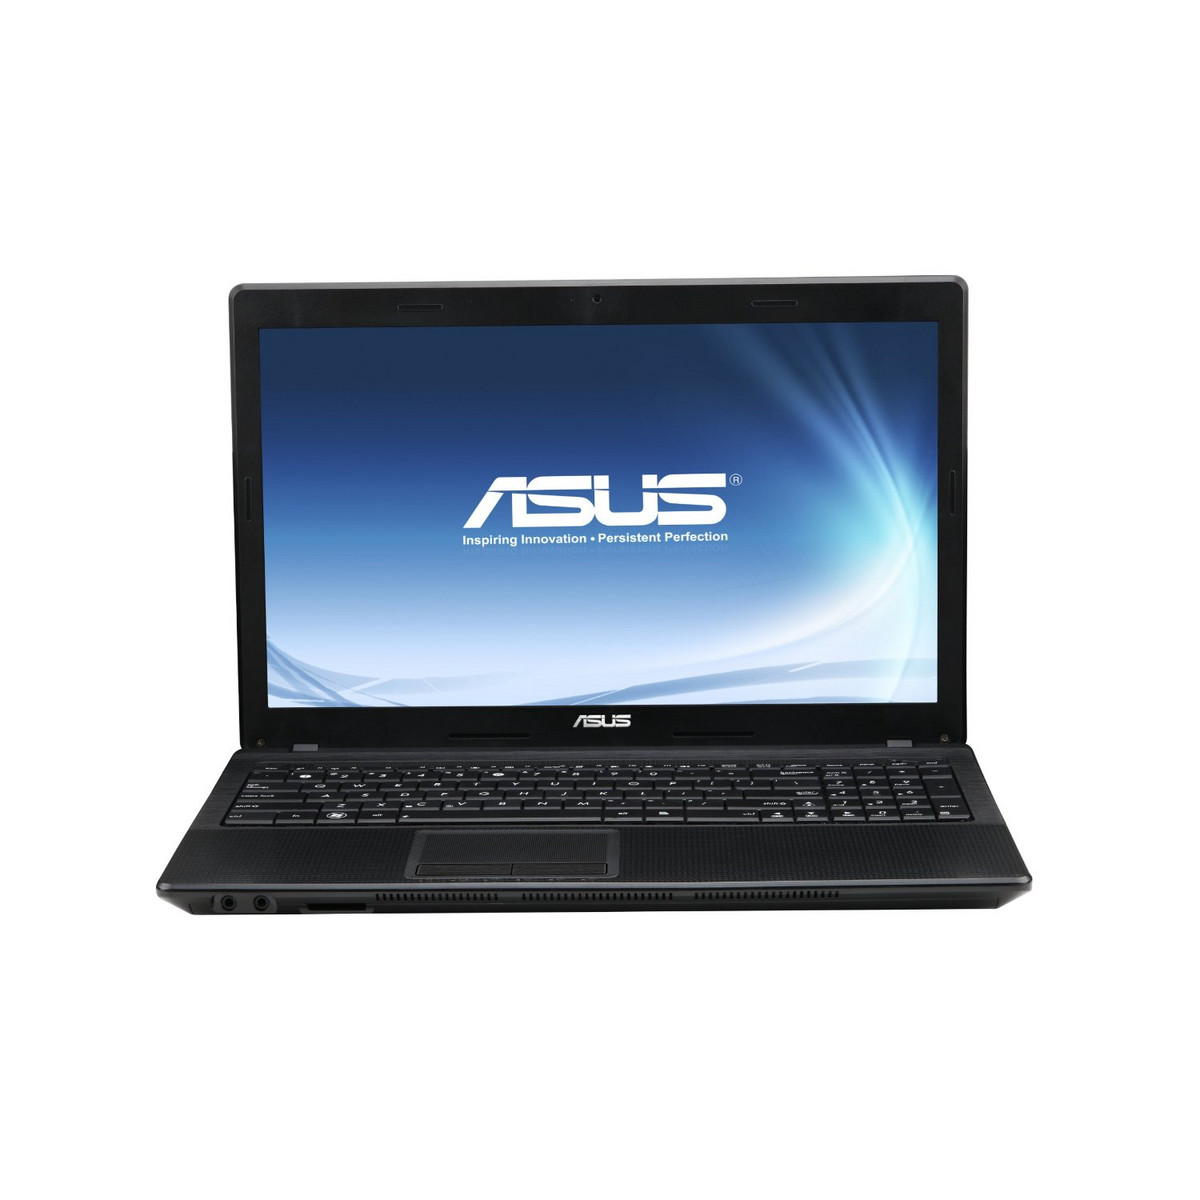 ASUS X54H NOTEBOOK TURBO BOOST MONITOR DOWNLOAD DRIVER